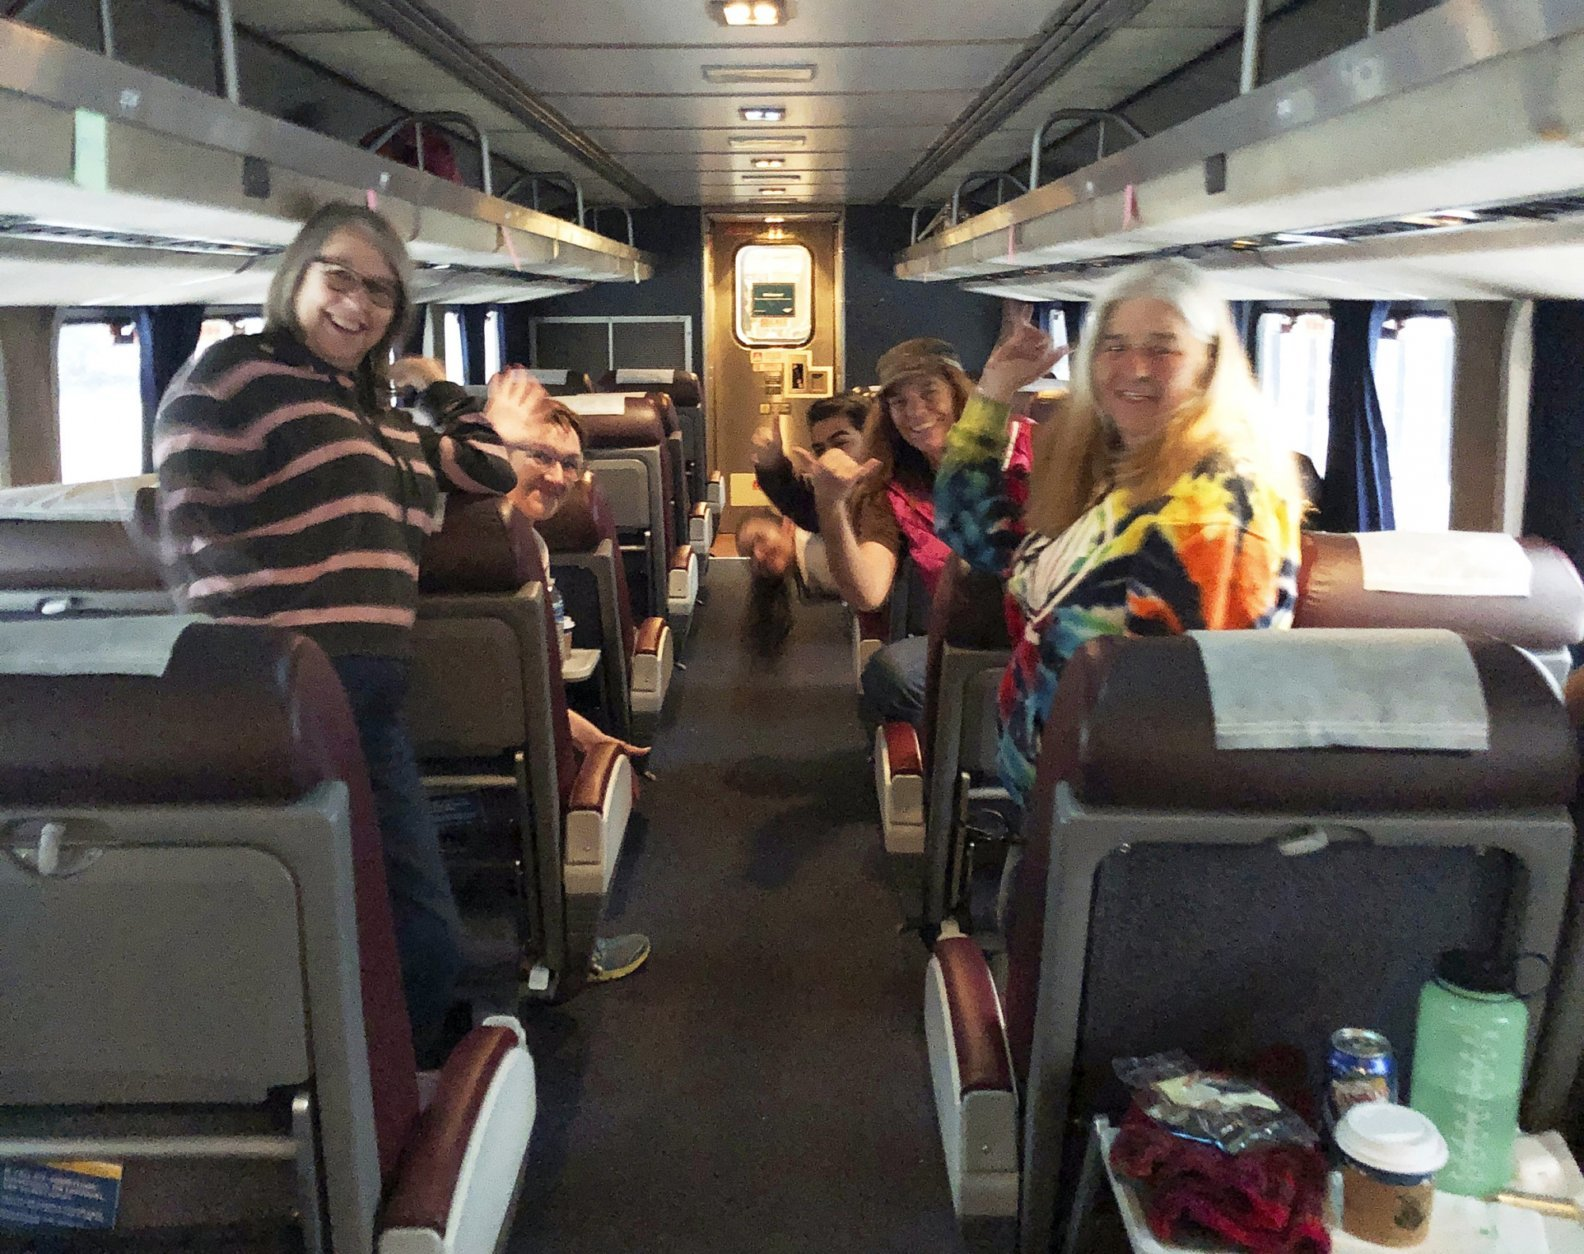 This photo provided by Emilie Wyrick shows passengers aboard a stranded Amtrak train making the best of their situation after the train hit downed trees during a blizzard in the Oregon mountains and was stopped for a day and a half, seen early Tuesday, Feb. 26, 2019. During the 36 hours that the train was stuck, younger passengers helped older ones reach their families to let them know they were all right. The trouble began Sunday evening, when the double-decker Coast Starlight train struck a tree that had fallen onto the tracks, Amtrak said. (Emilie Wyrick via AP)